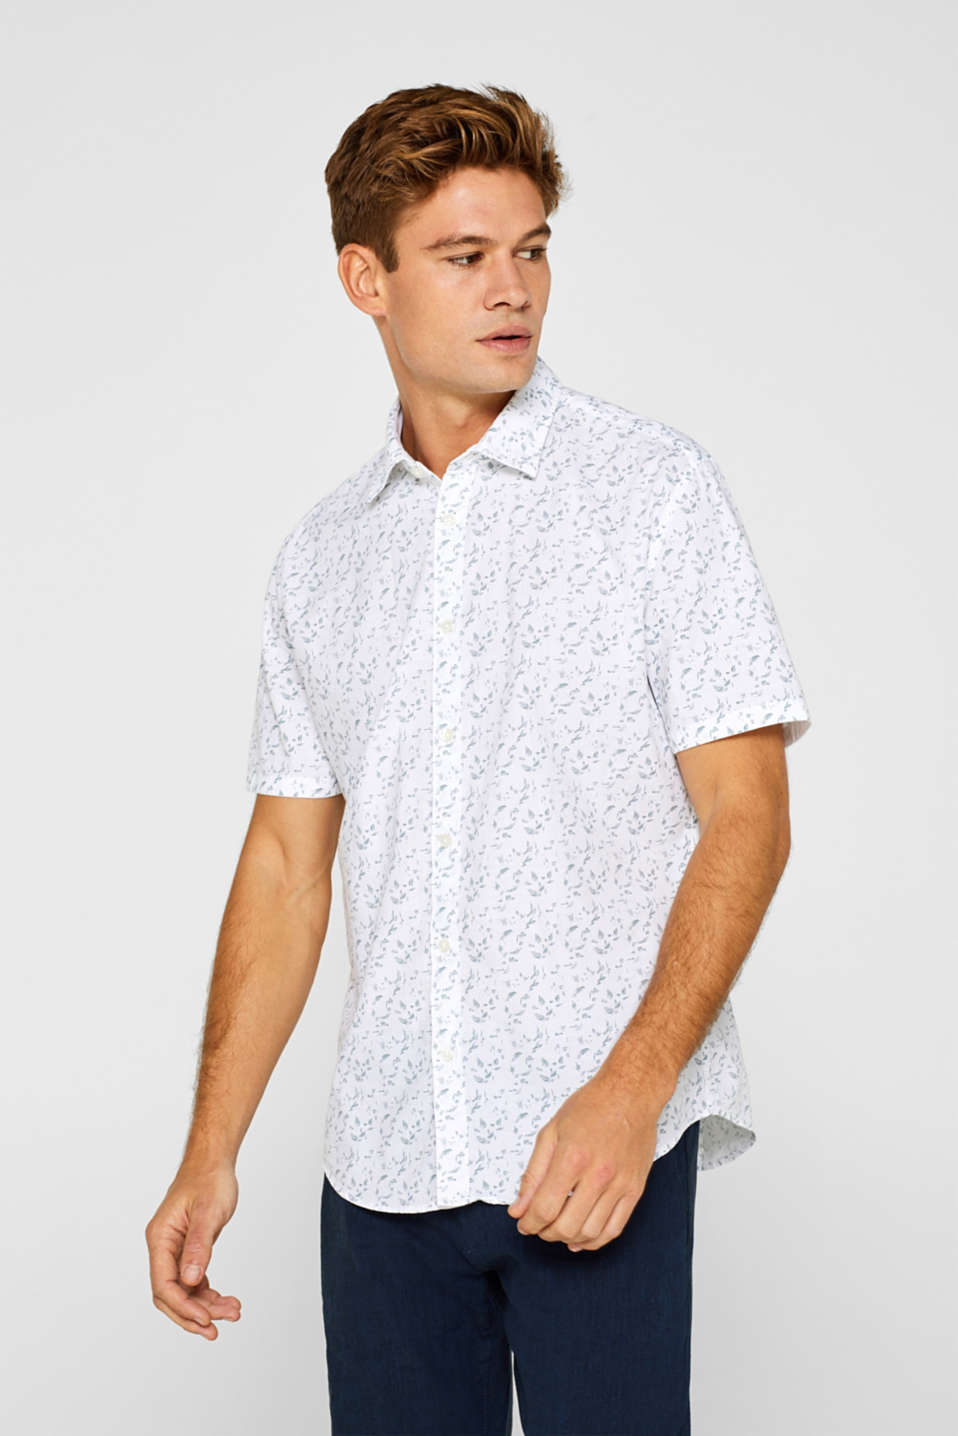 Esprit - Patterned short sleeve shirt made of 100% cotton